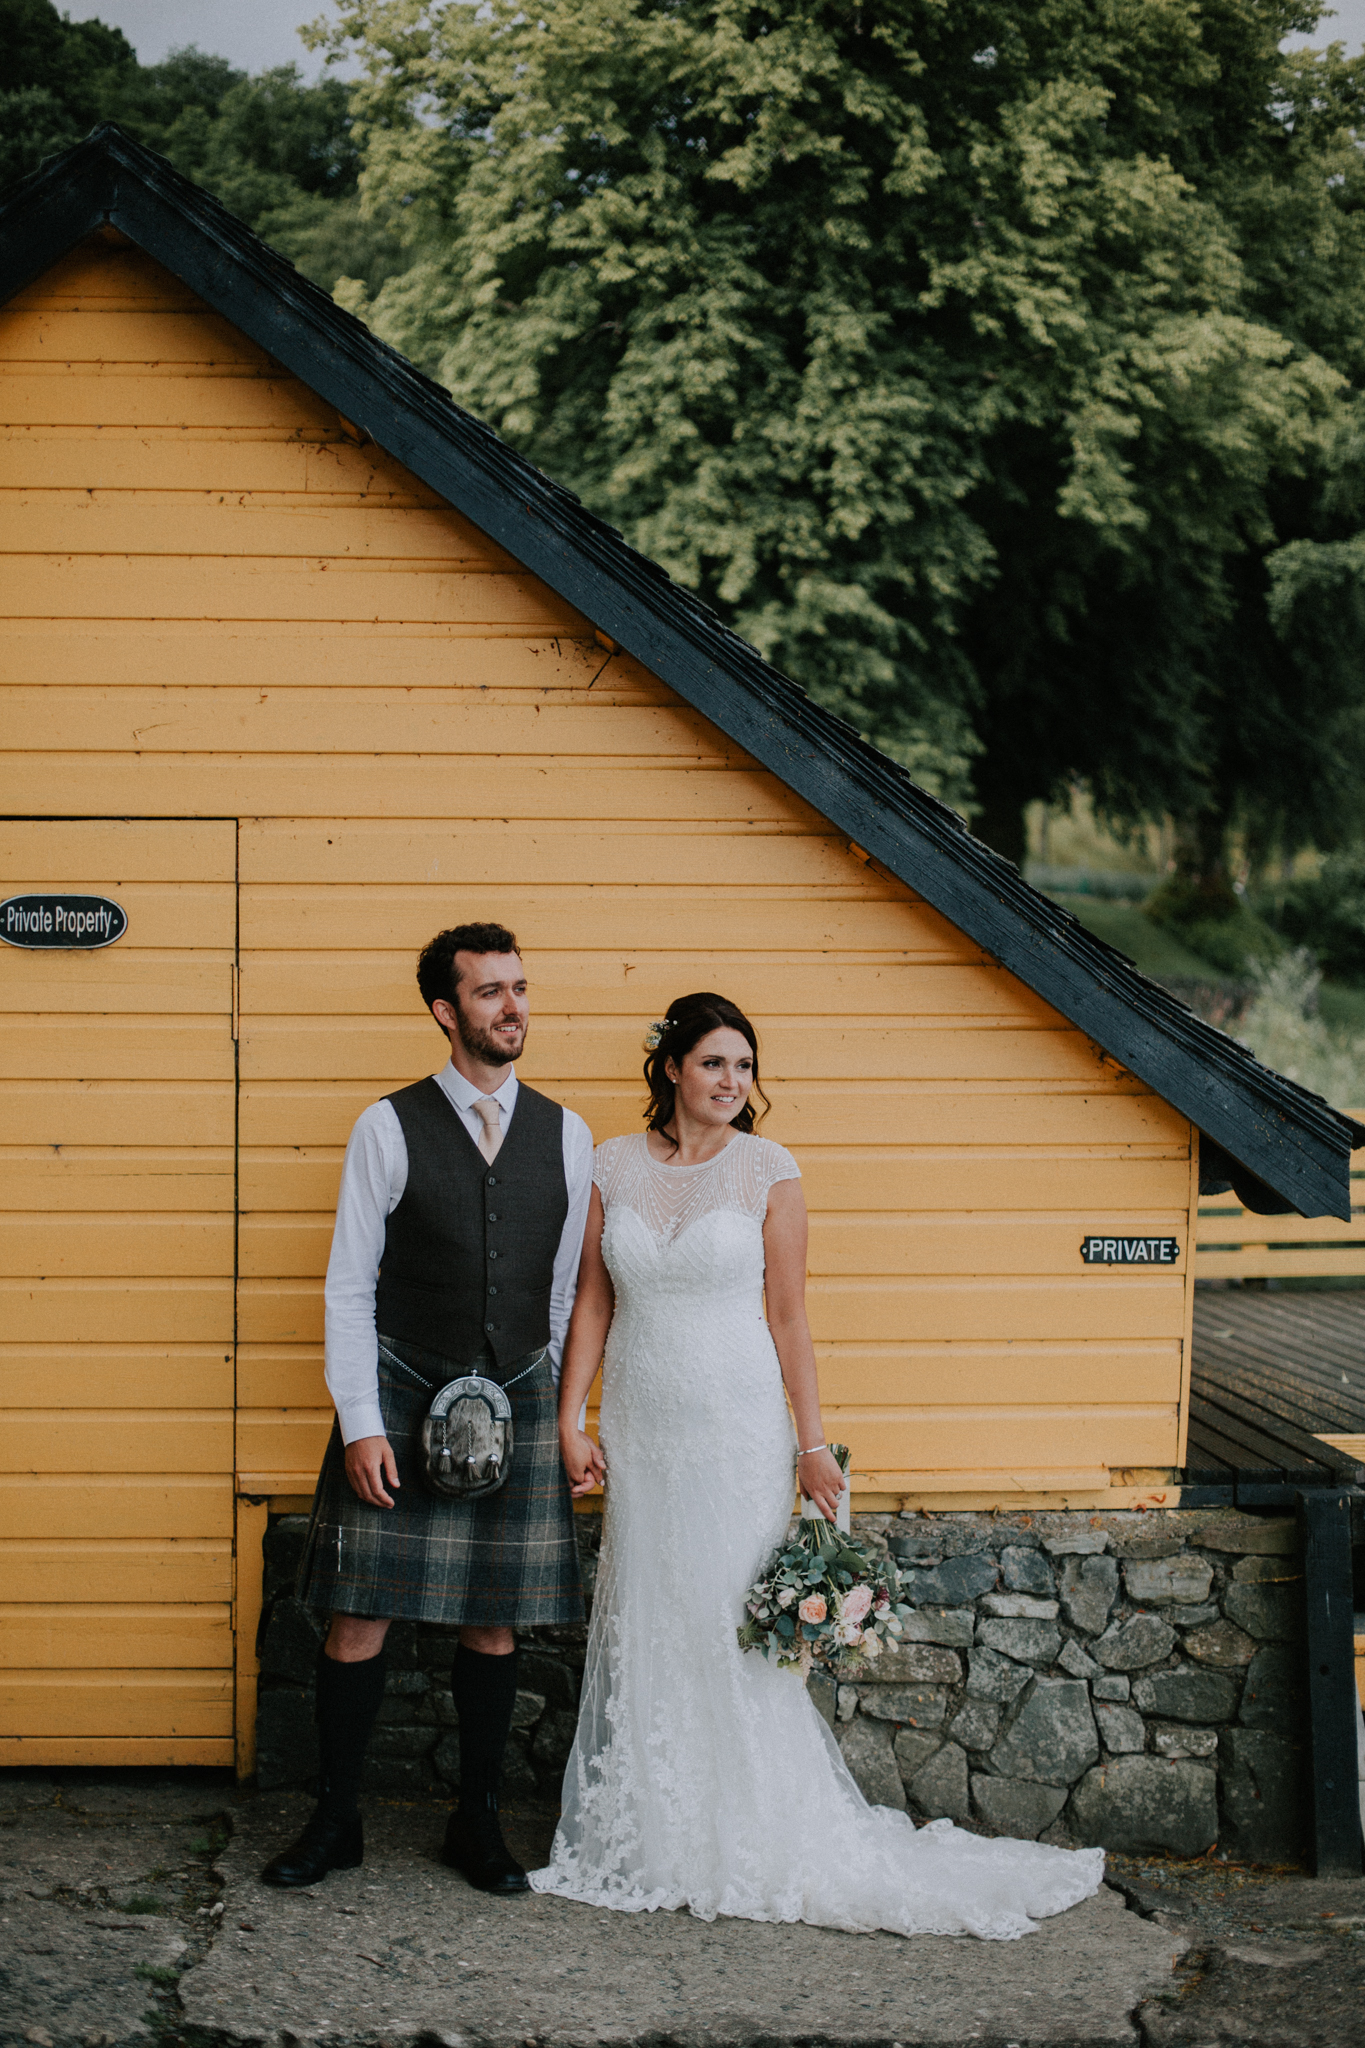 The couple is standing next to the yellow boat house during the evening couple shoot at Altskeith Country House